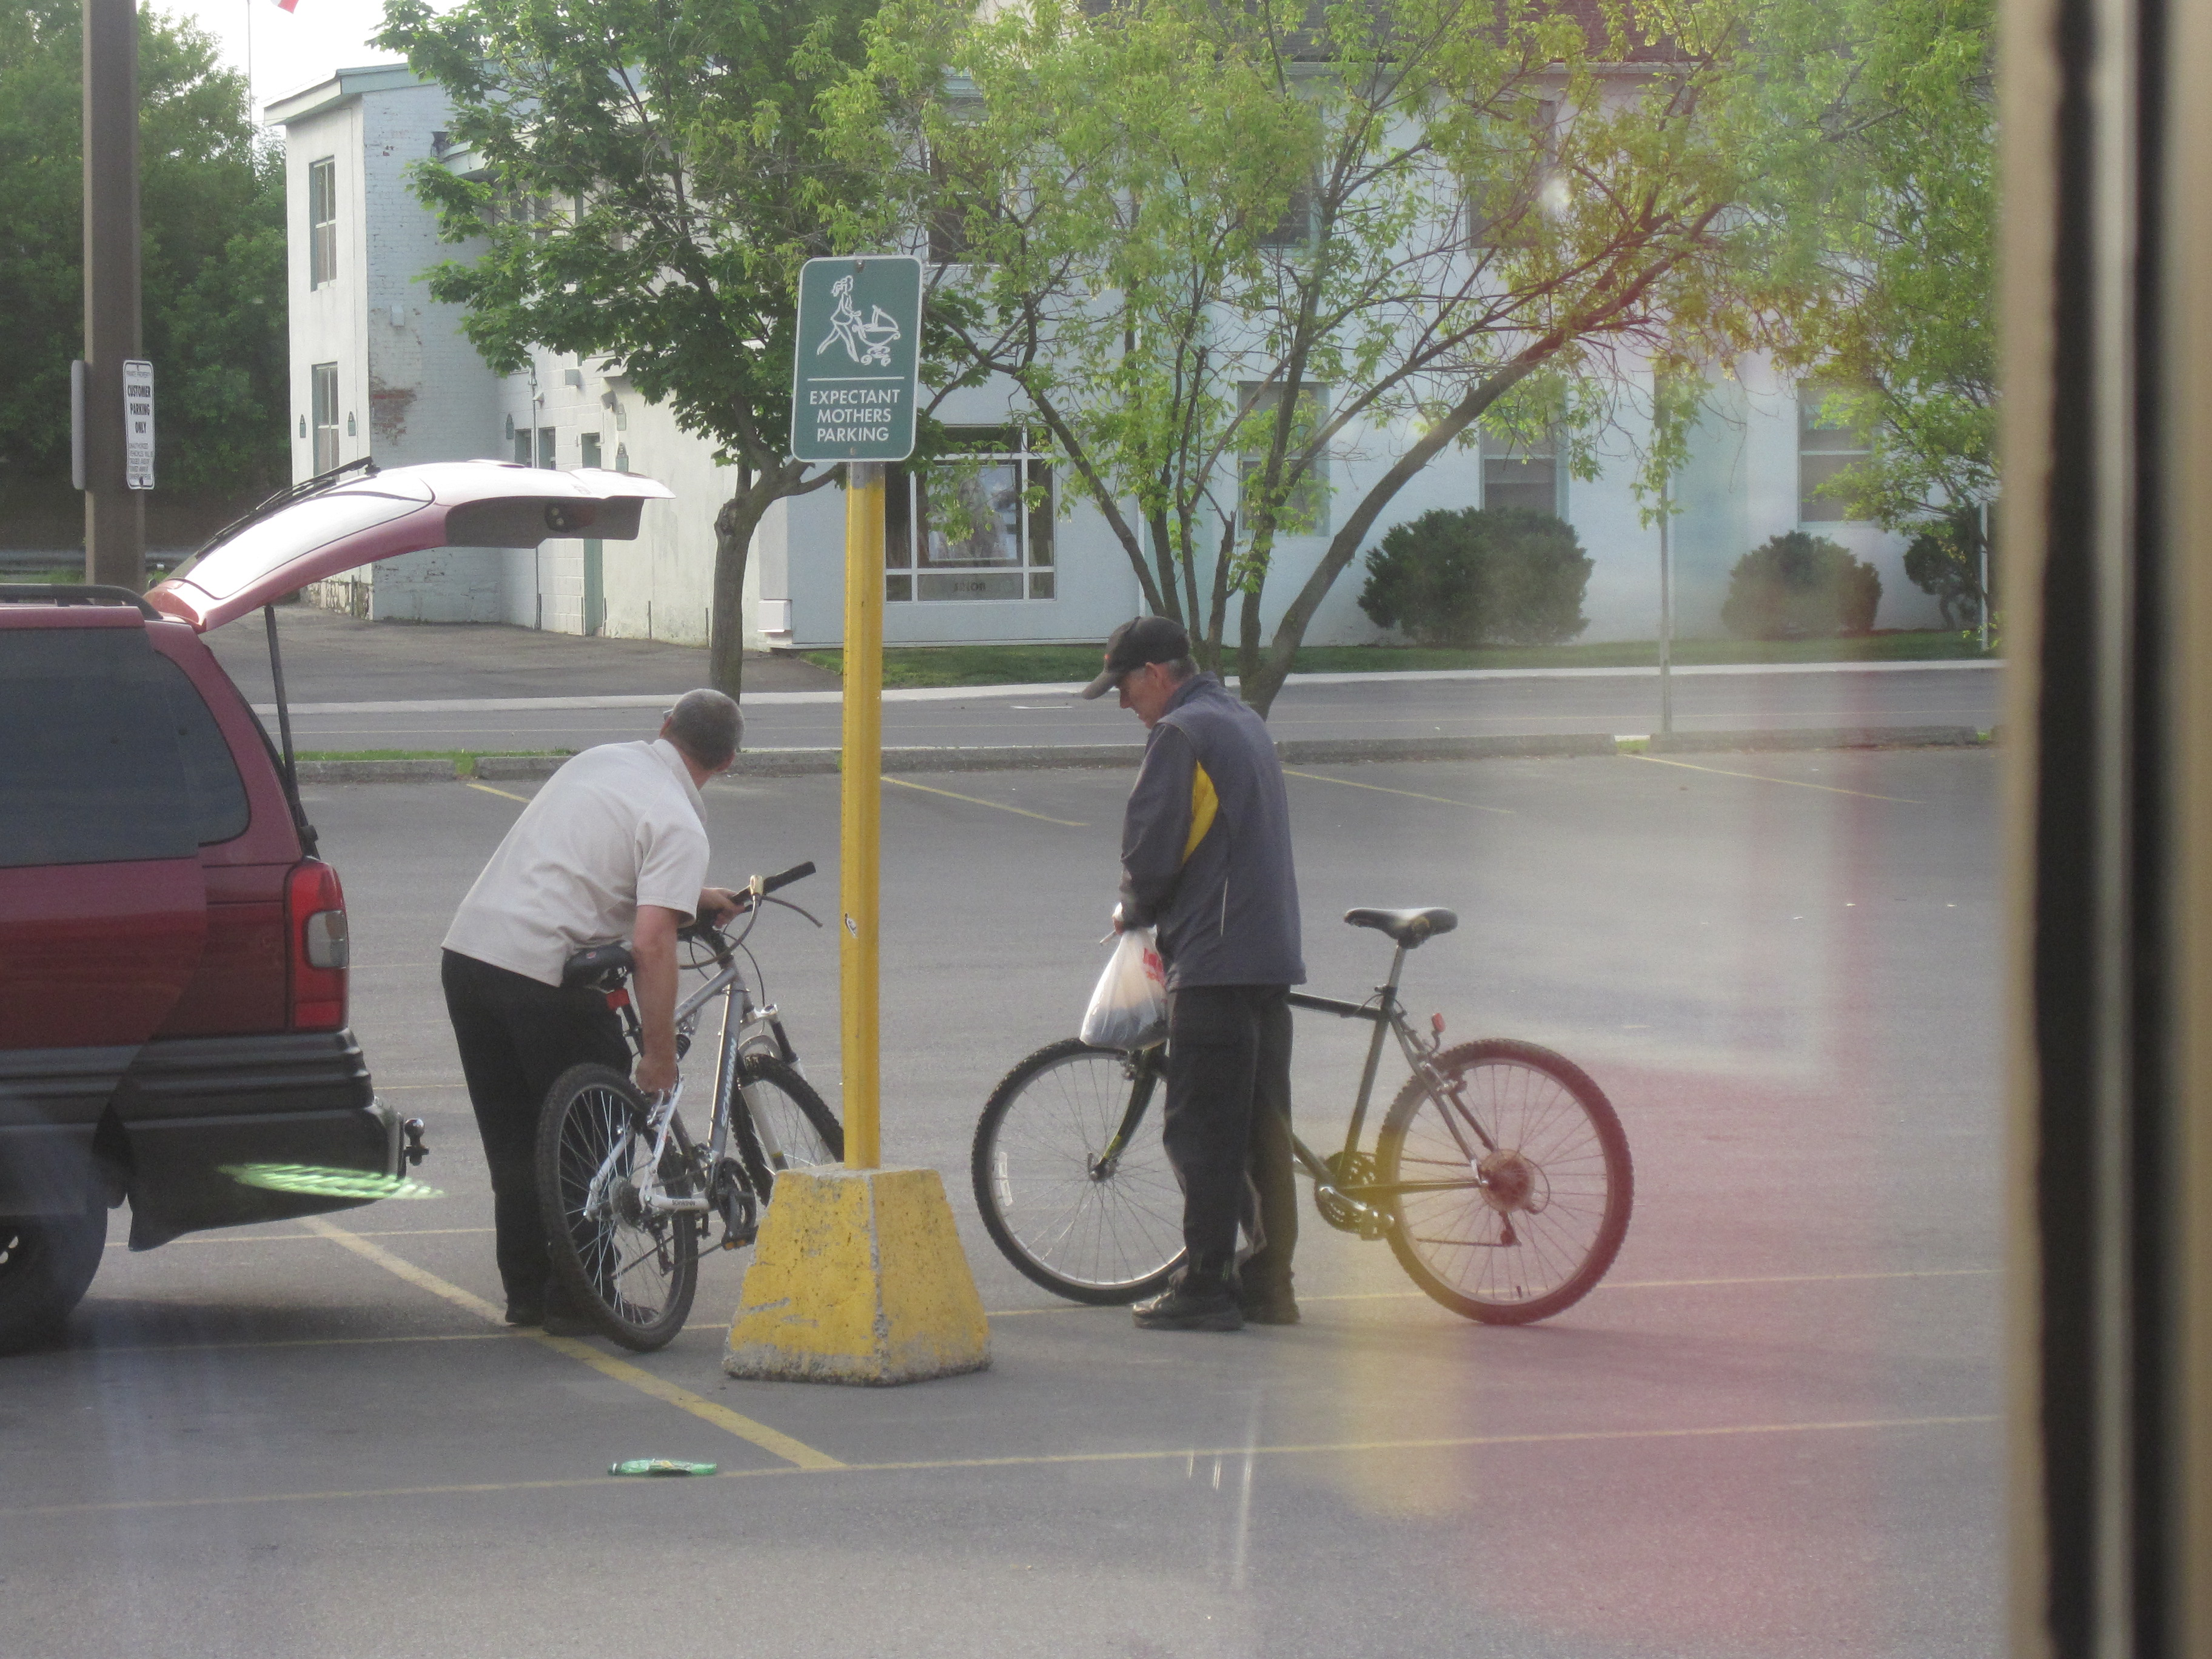 SATURDAY GROCERIES ON A LATE JUNE MORNING (and an unstolen bike?)